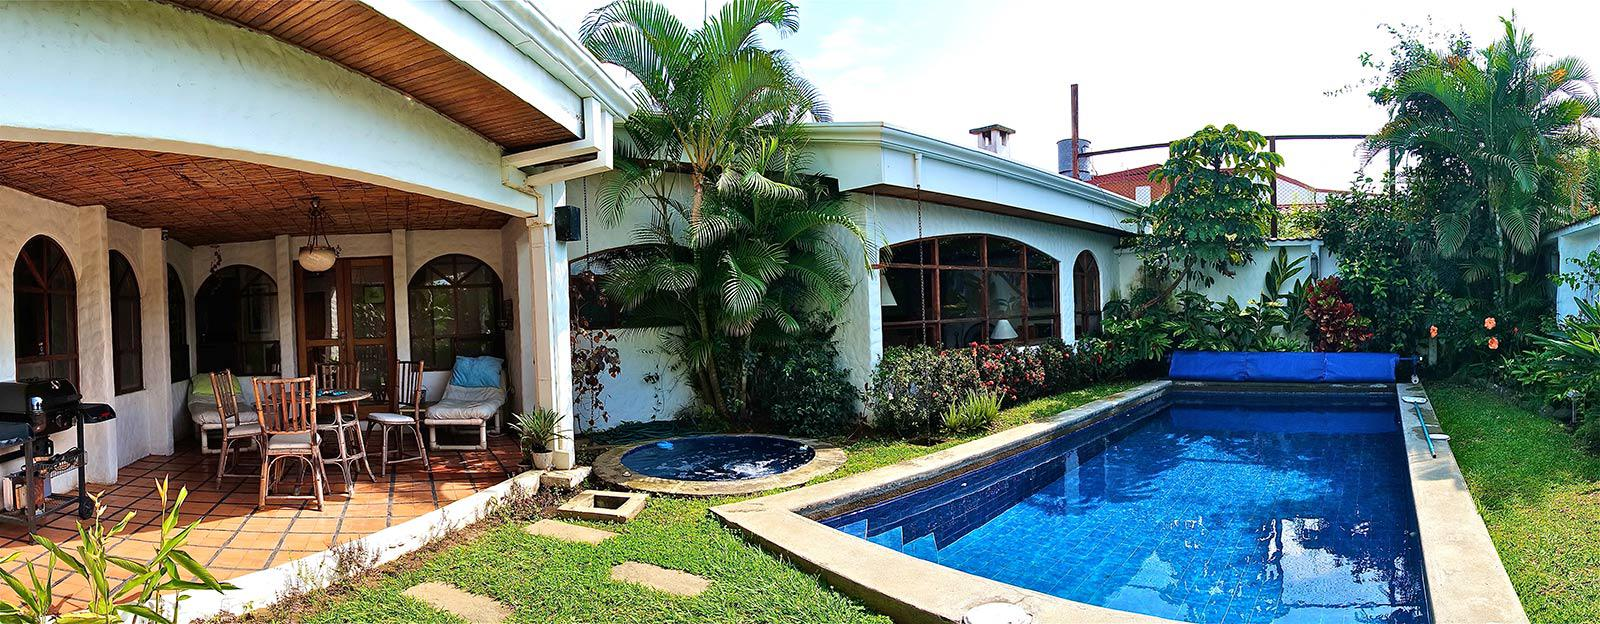 san jose, costa rica, one story home, for sale, private solar heated swimming pool, one level home, in gated community, 24/7 secure condominiu